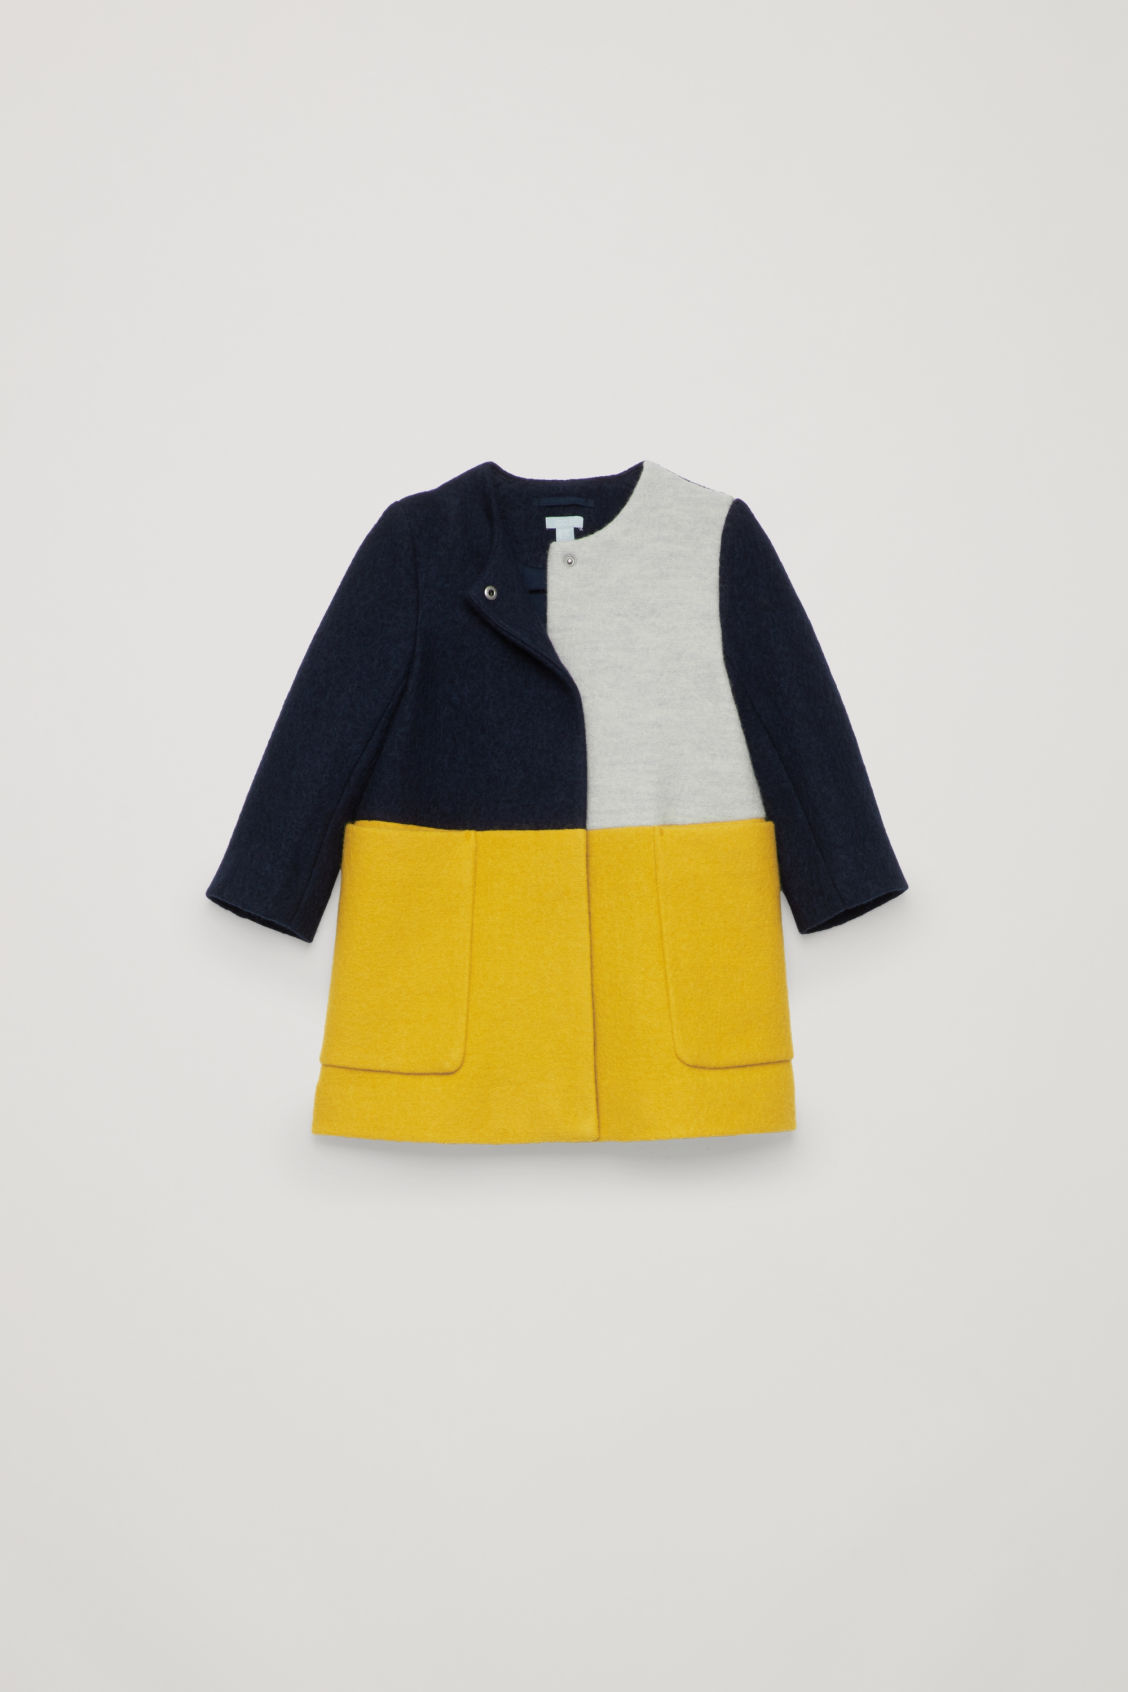 4764d1b75639 BOILED WOOL COAT - Yellow   navy   light grey - Girls - COS